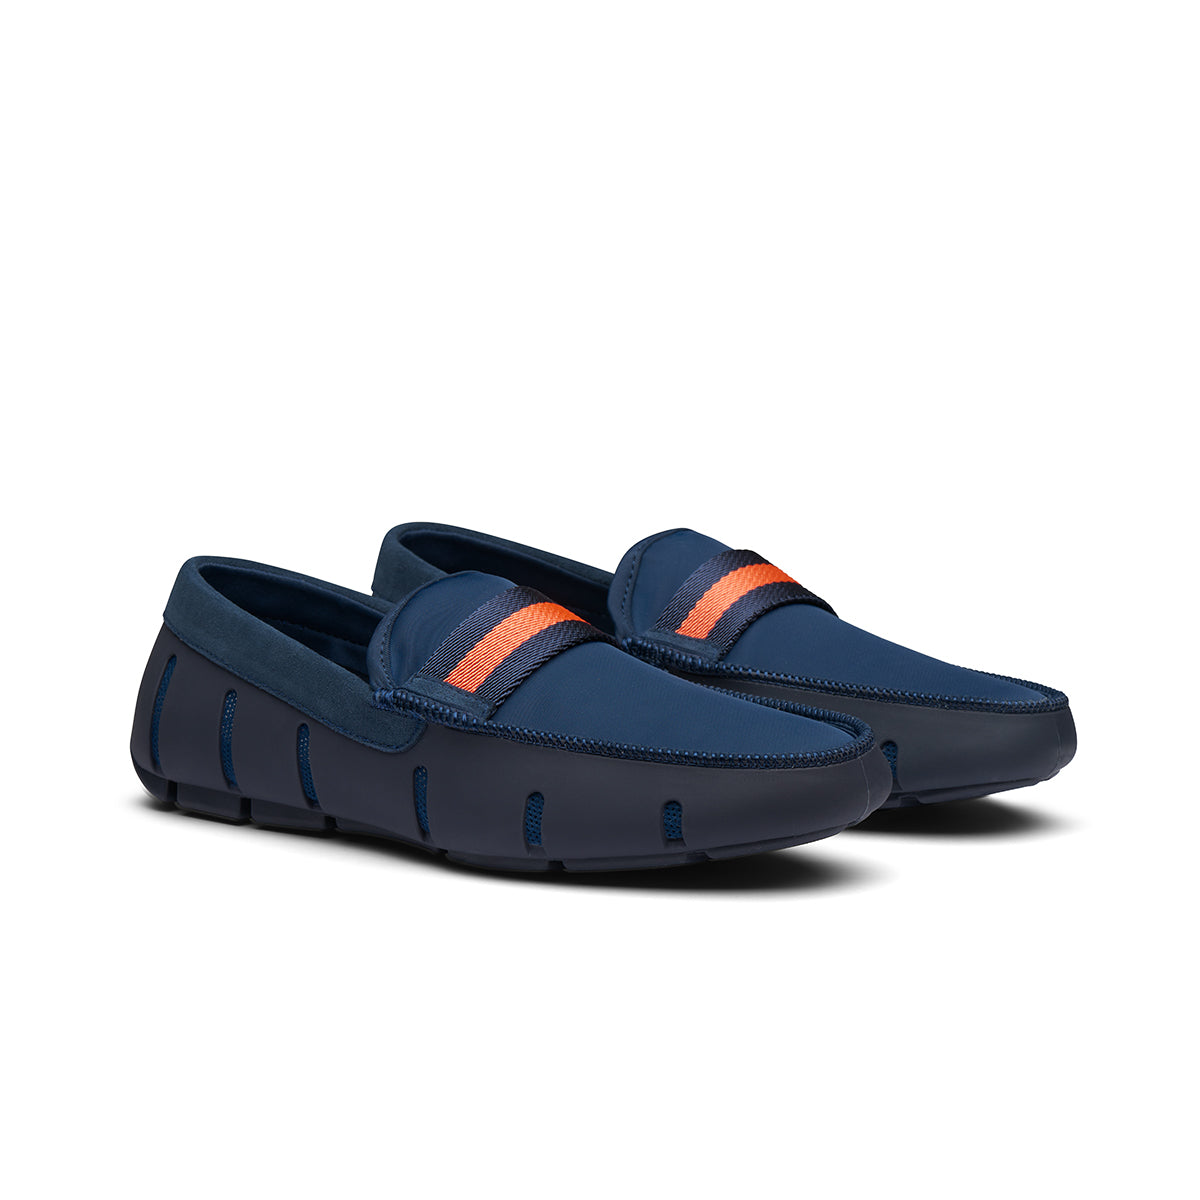 Flex Web Loafer - background::white,variant::Navy